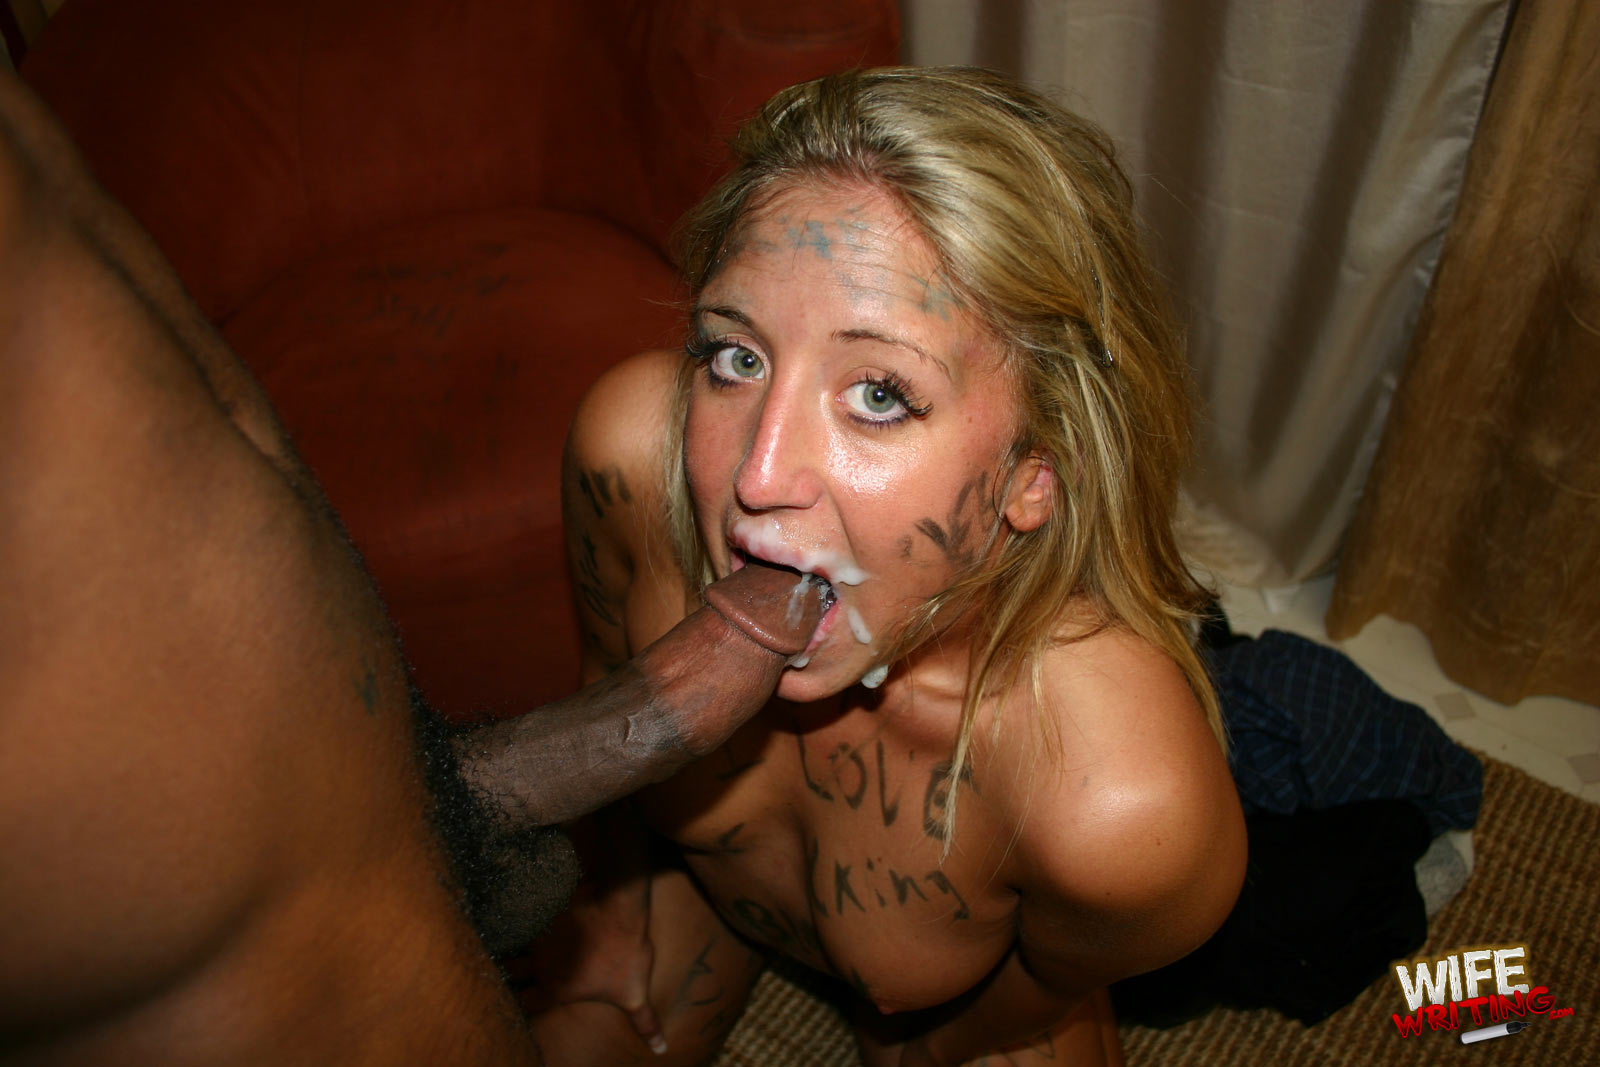 Bitch sex blond young